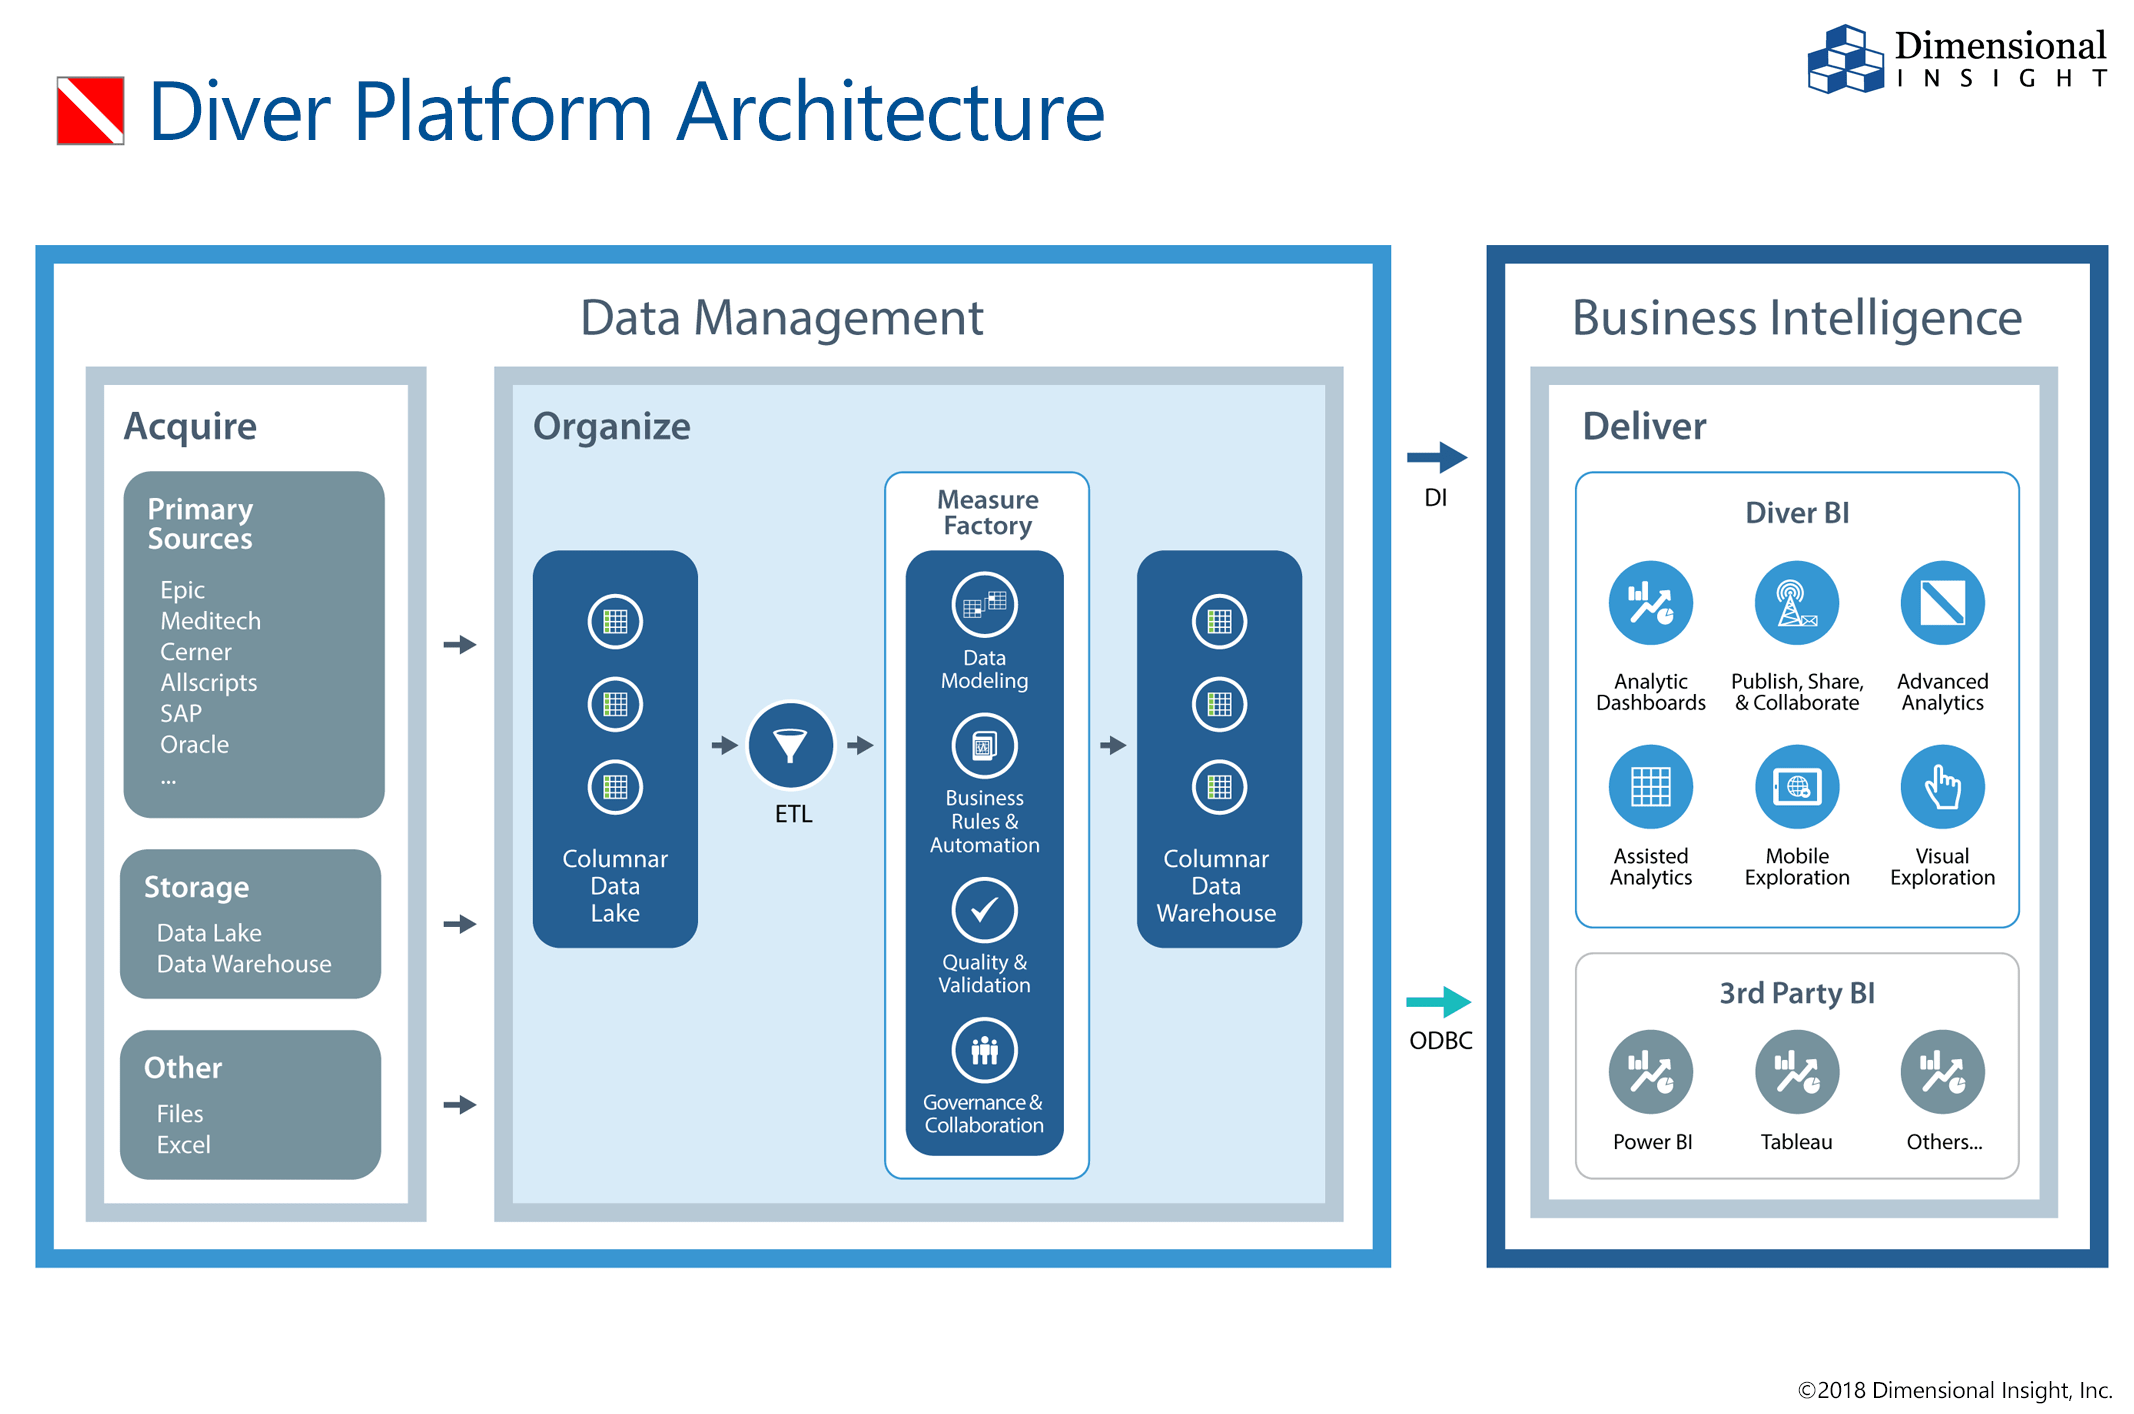 Diver's robust operating architecture provides a truly one source solution to integrate many data sources, automate predefined business rules, validate data, govern data and enable ongoing collaboration. Diver's architecture and tools maintain data consistency across the enterprise and generates data trust to make informed decisions.